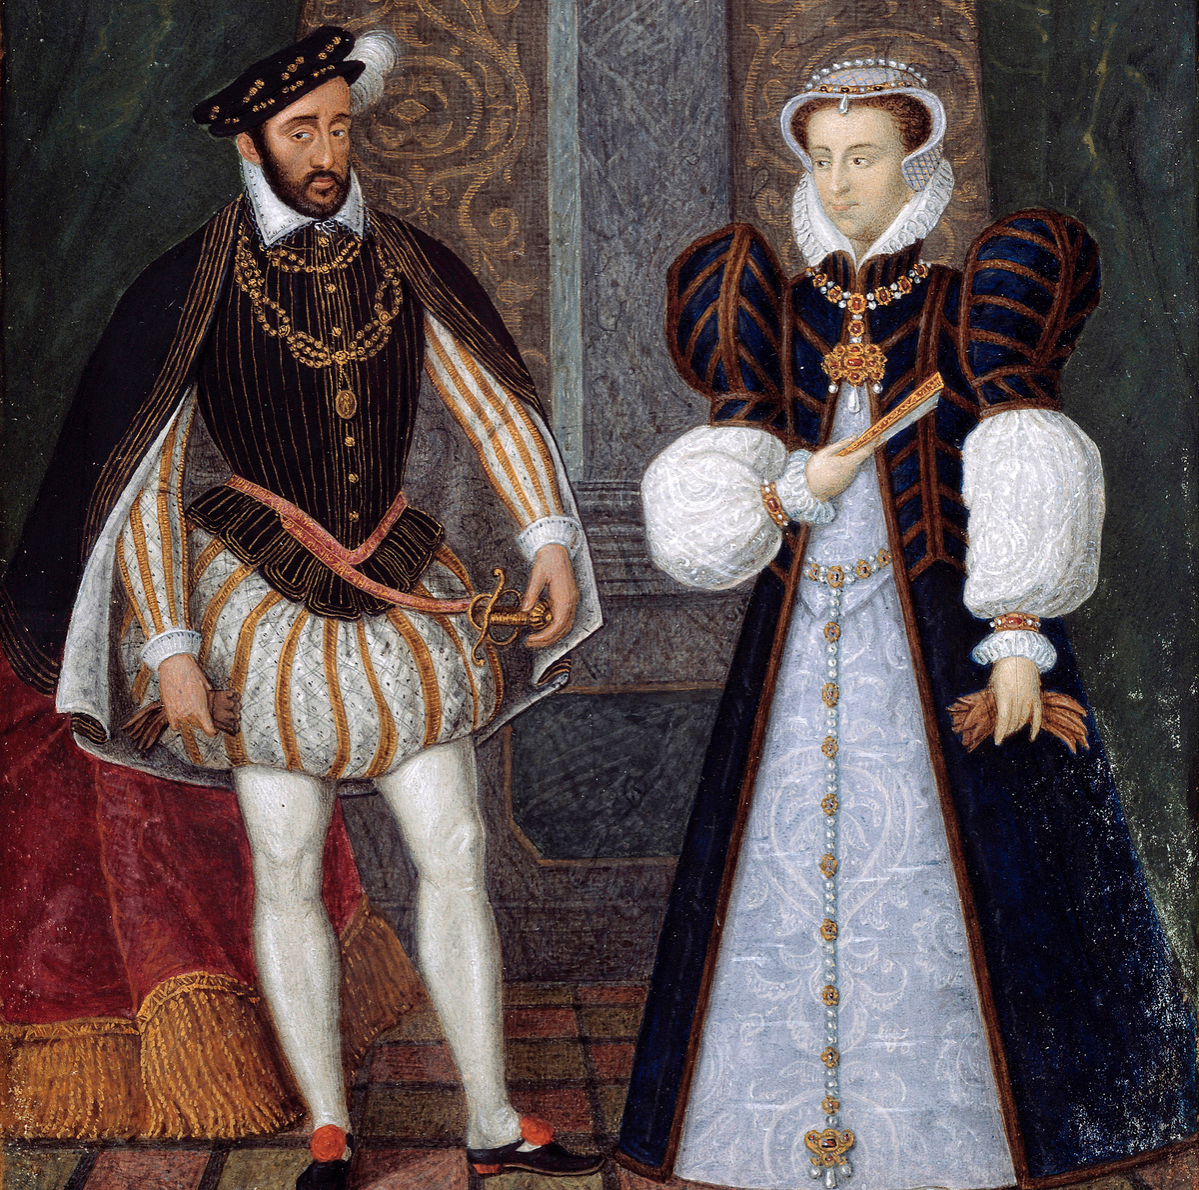 Portraits of Henry II (1519-1559) and Catherine de Medicis (Caterina de Medici) (1519-1589), King and Queen of France.